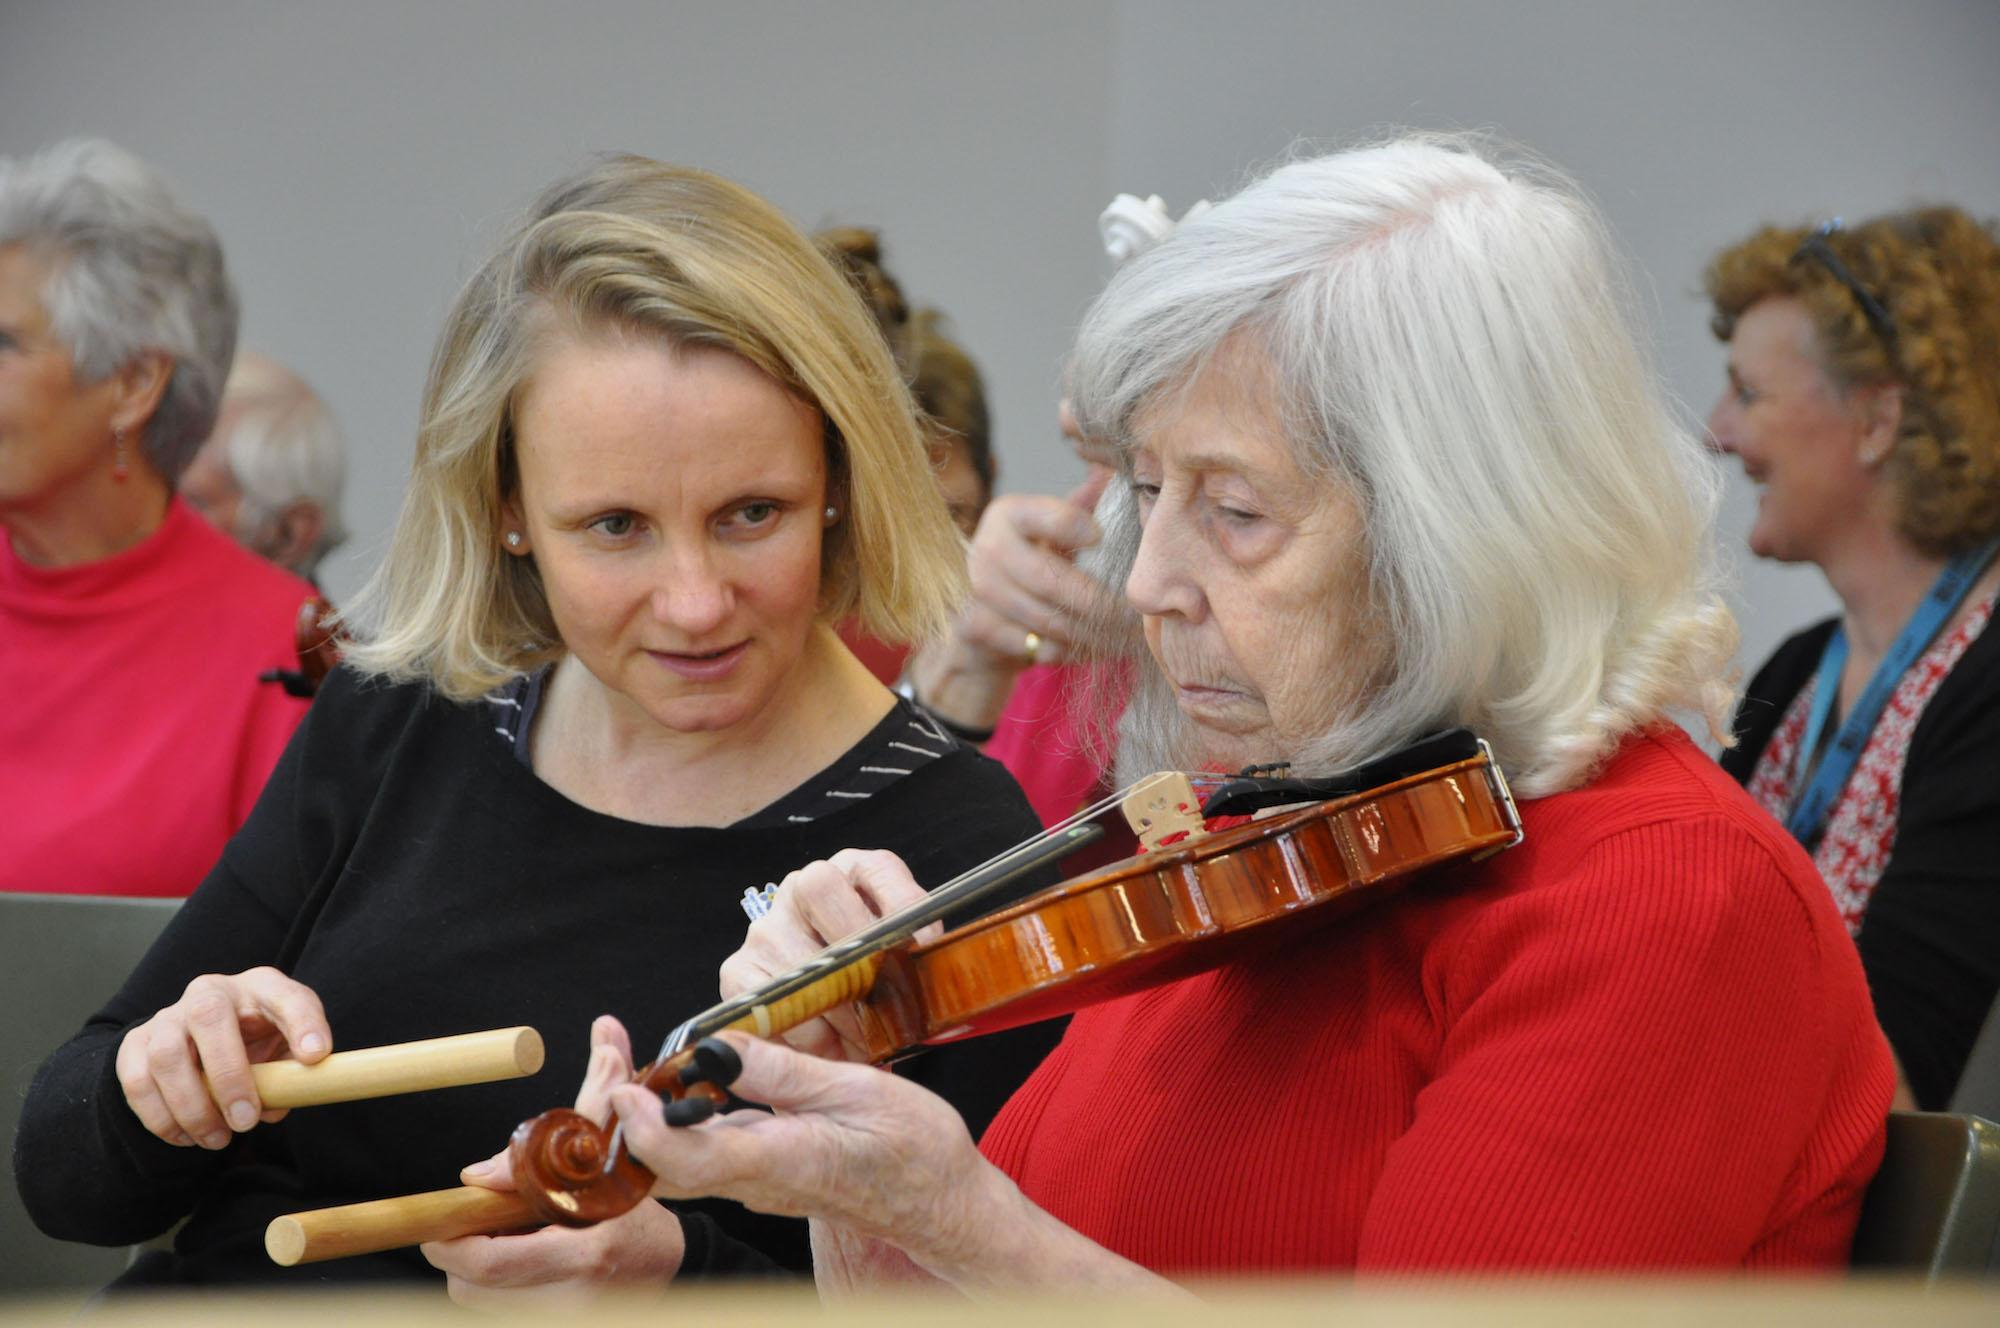 85 year old with dementia adds another string to her bow